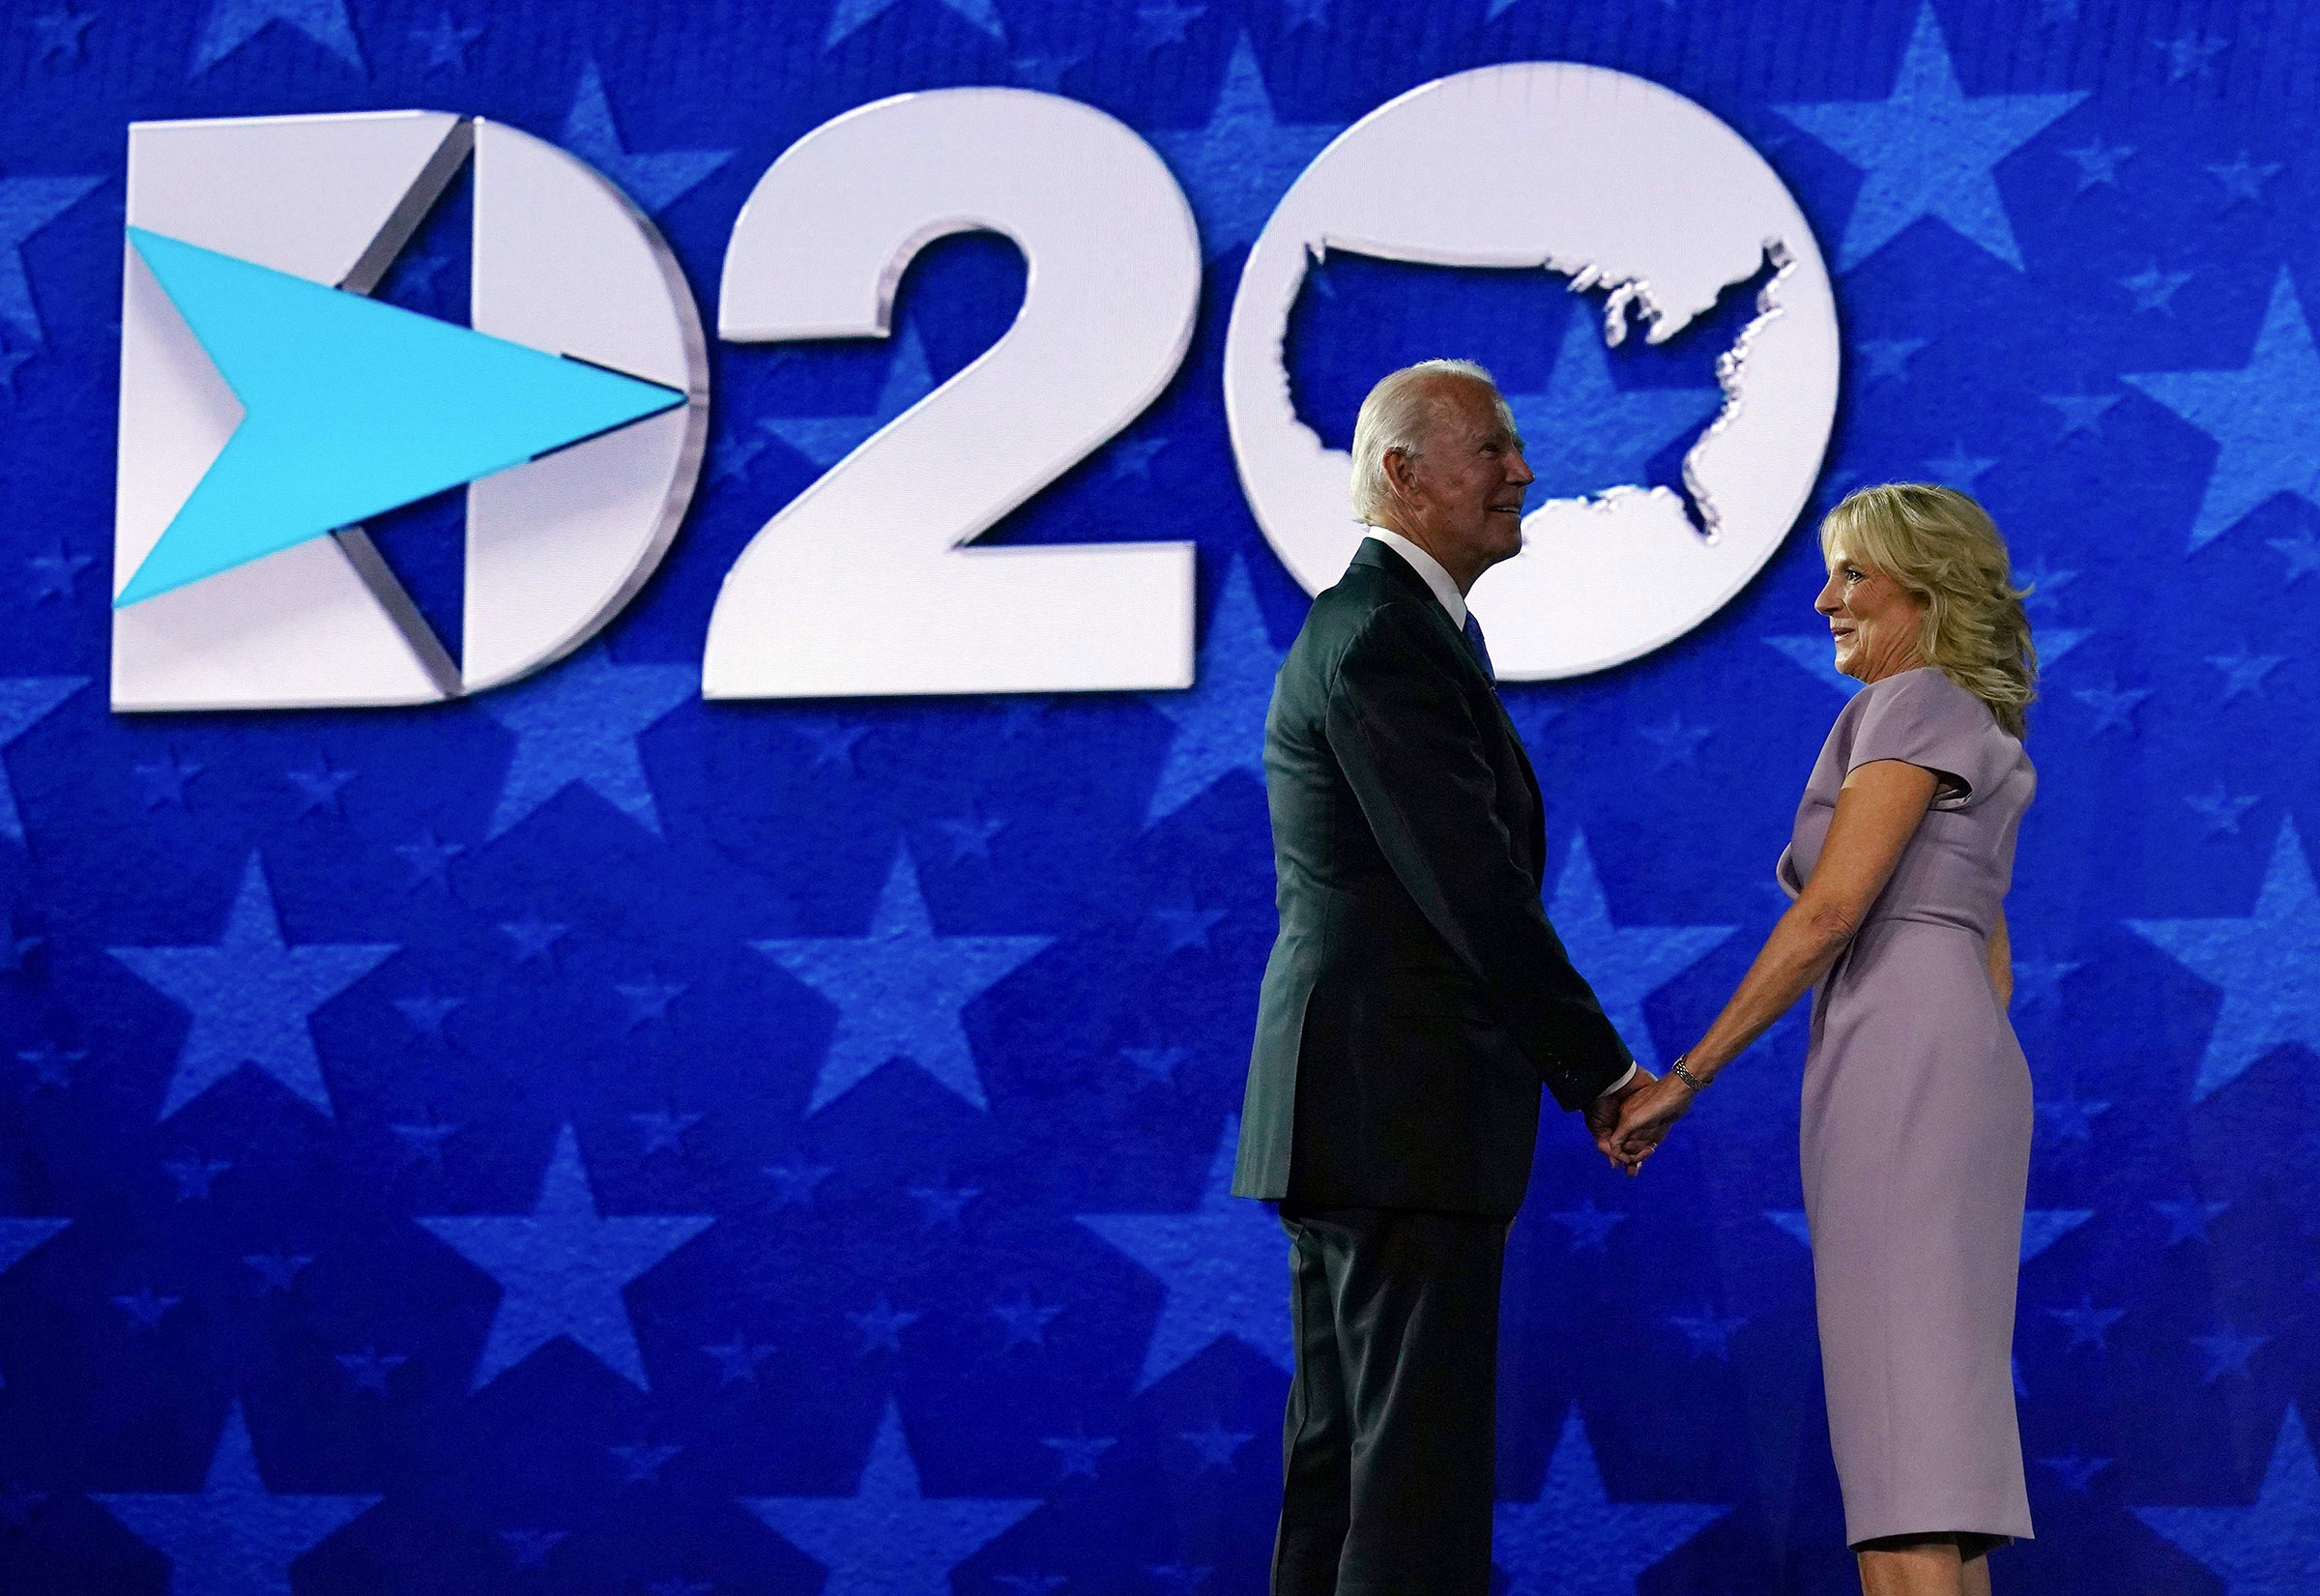 Former vice-president and Democratic presidential nominee Joe Biden and his wife Jill Biden stand on stage after he accepted the Democratic Party nomination for US president during the last day of the Democratic National Convention, being held virtually amid the novel coronavirus pandemic, at the Chase Center in Wilmington, Delaware on Aug. 20, 2020.